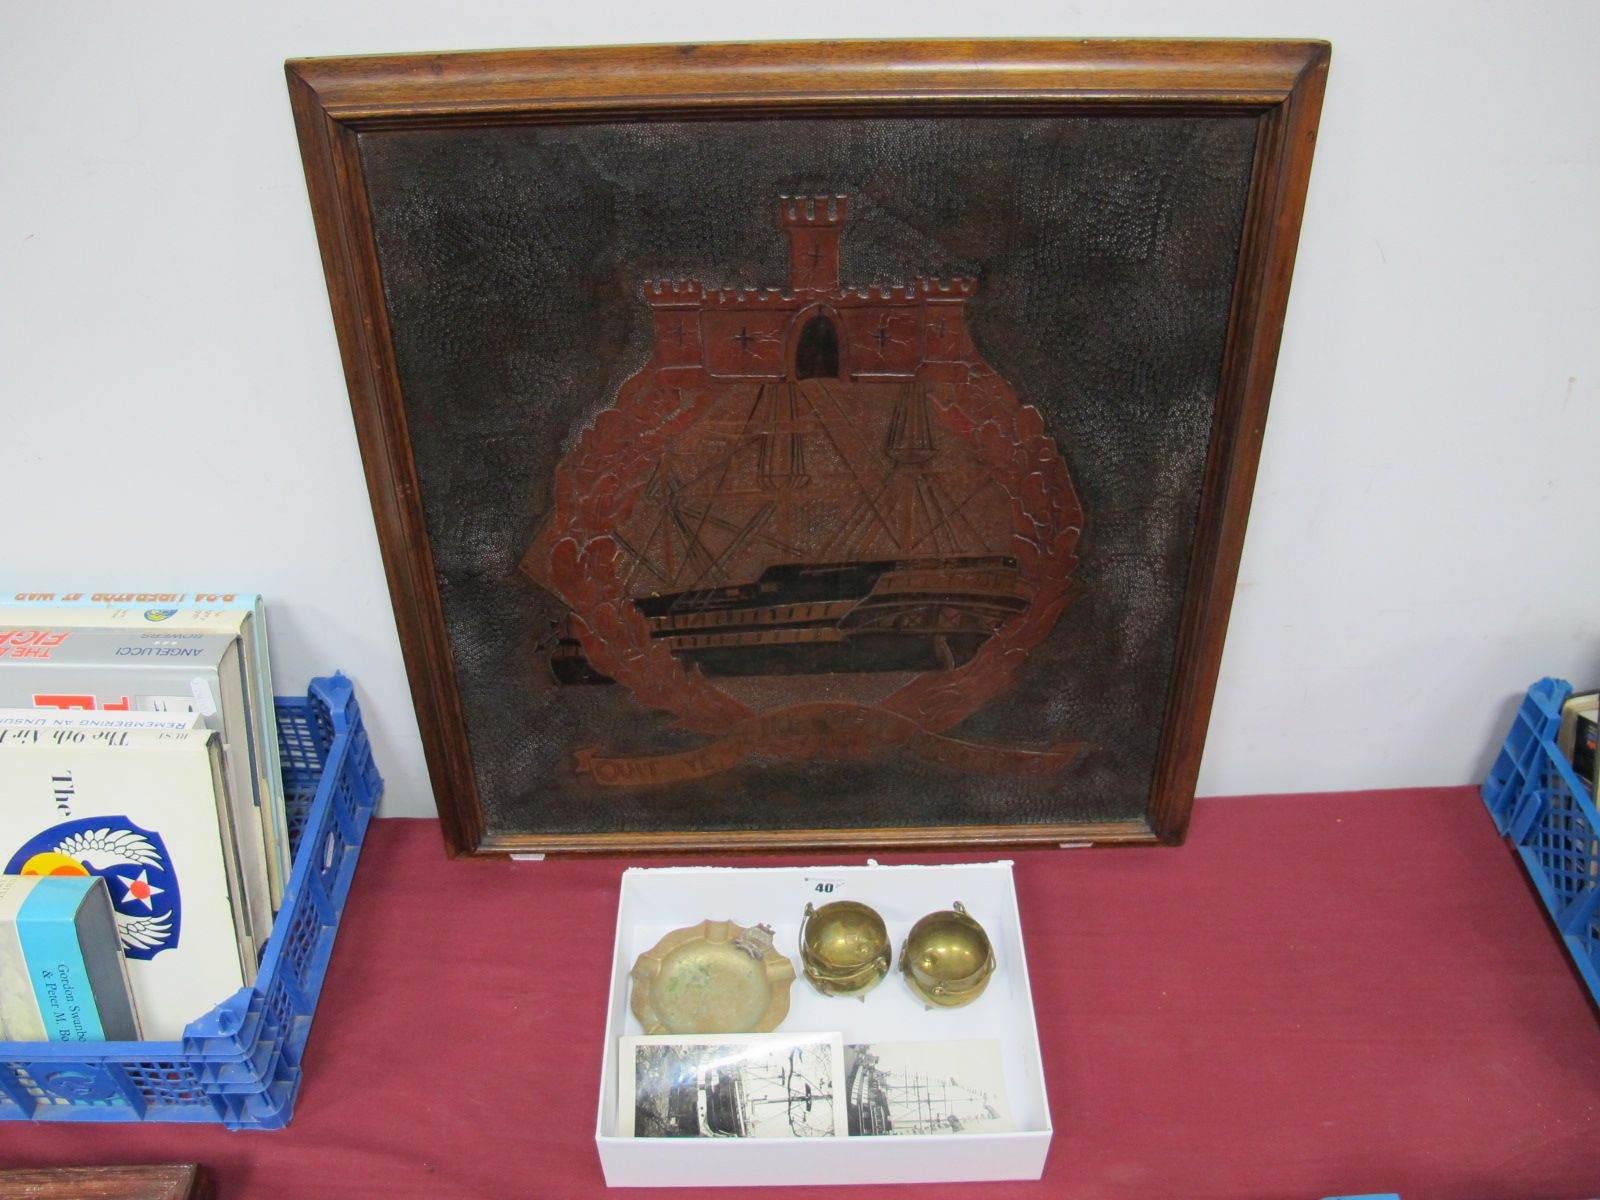 Lot 40 - HMS Conway Interest, A Framed Leather Crest, 54 x 58cms, three pieces of Crested Ware, an ashtray